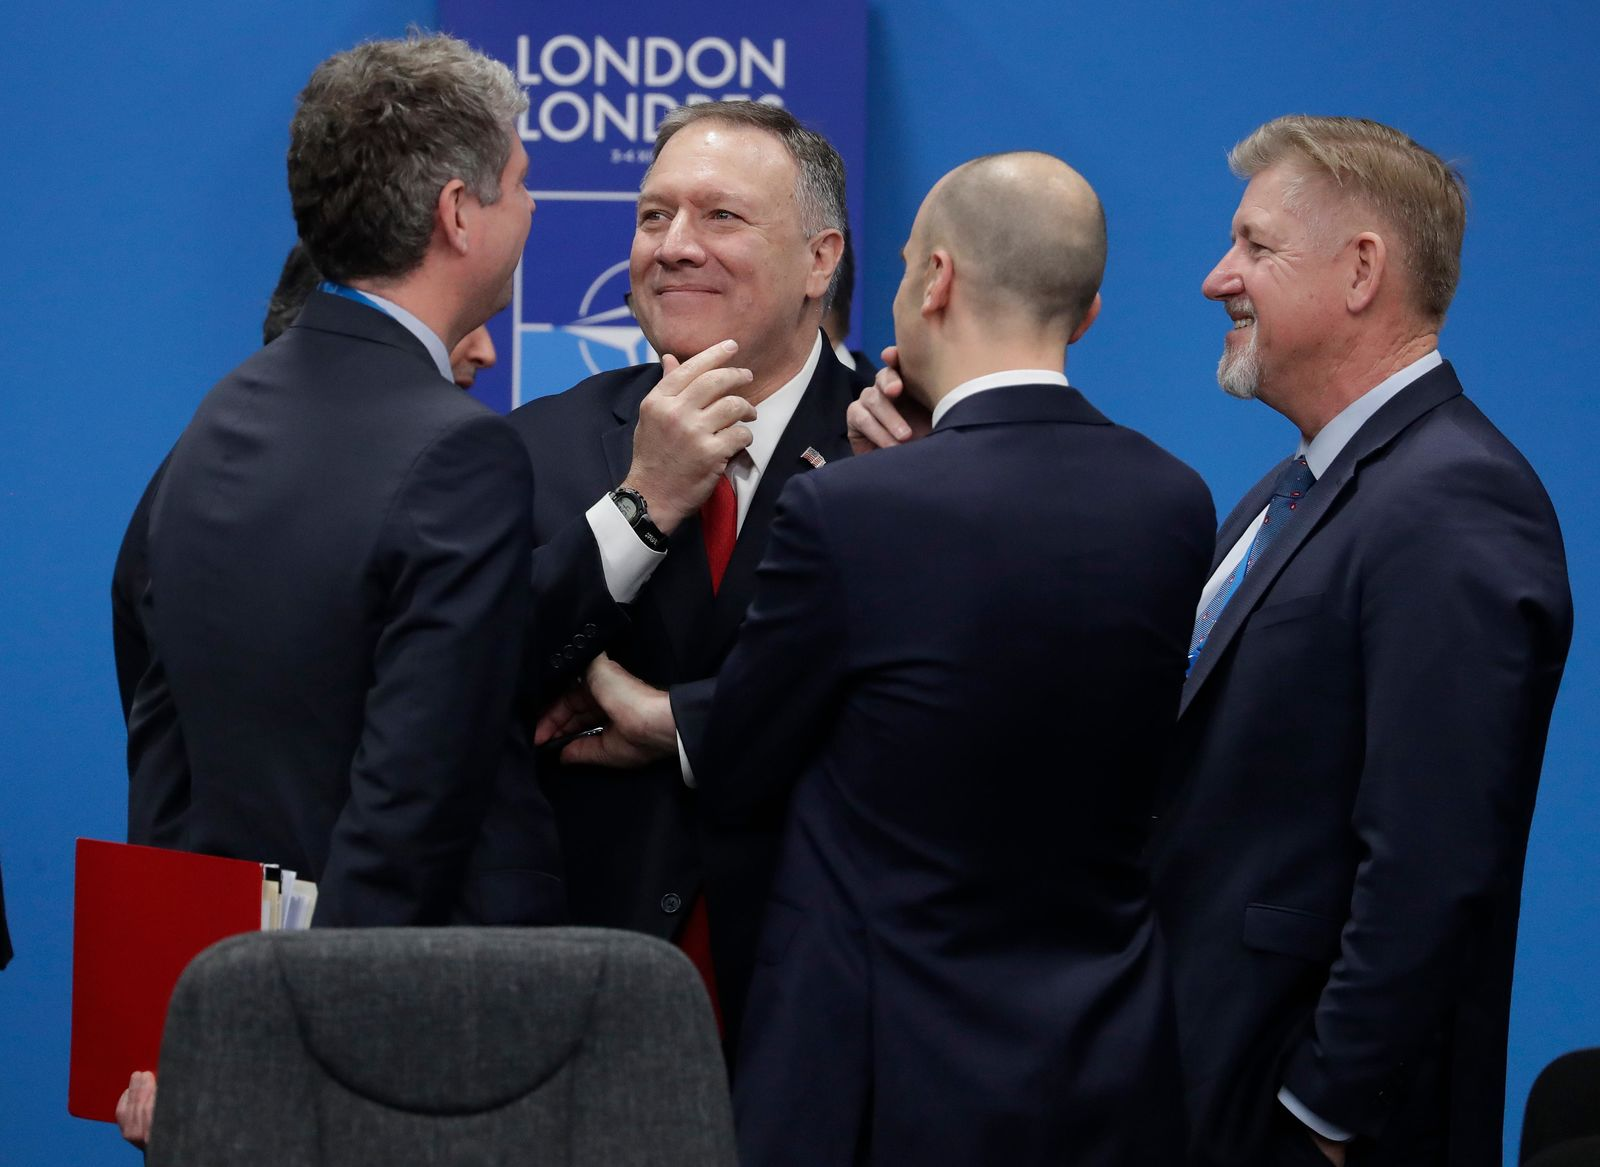 Secreatary of State Mike Pompeo, center, smiles as he arrives to participate in a round table meeting during a NATO leaders meeting at The Grove hotel and resort in Watford, Hertfordshire, England, Wednesday, Dec. 4, 2019. (AP Photo/Evan Vucci)